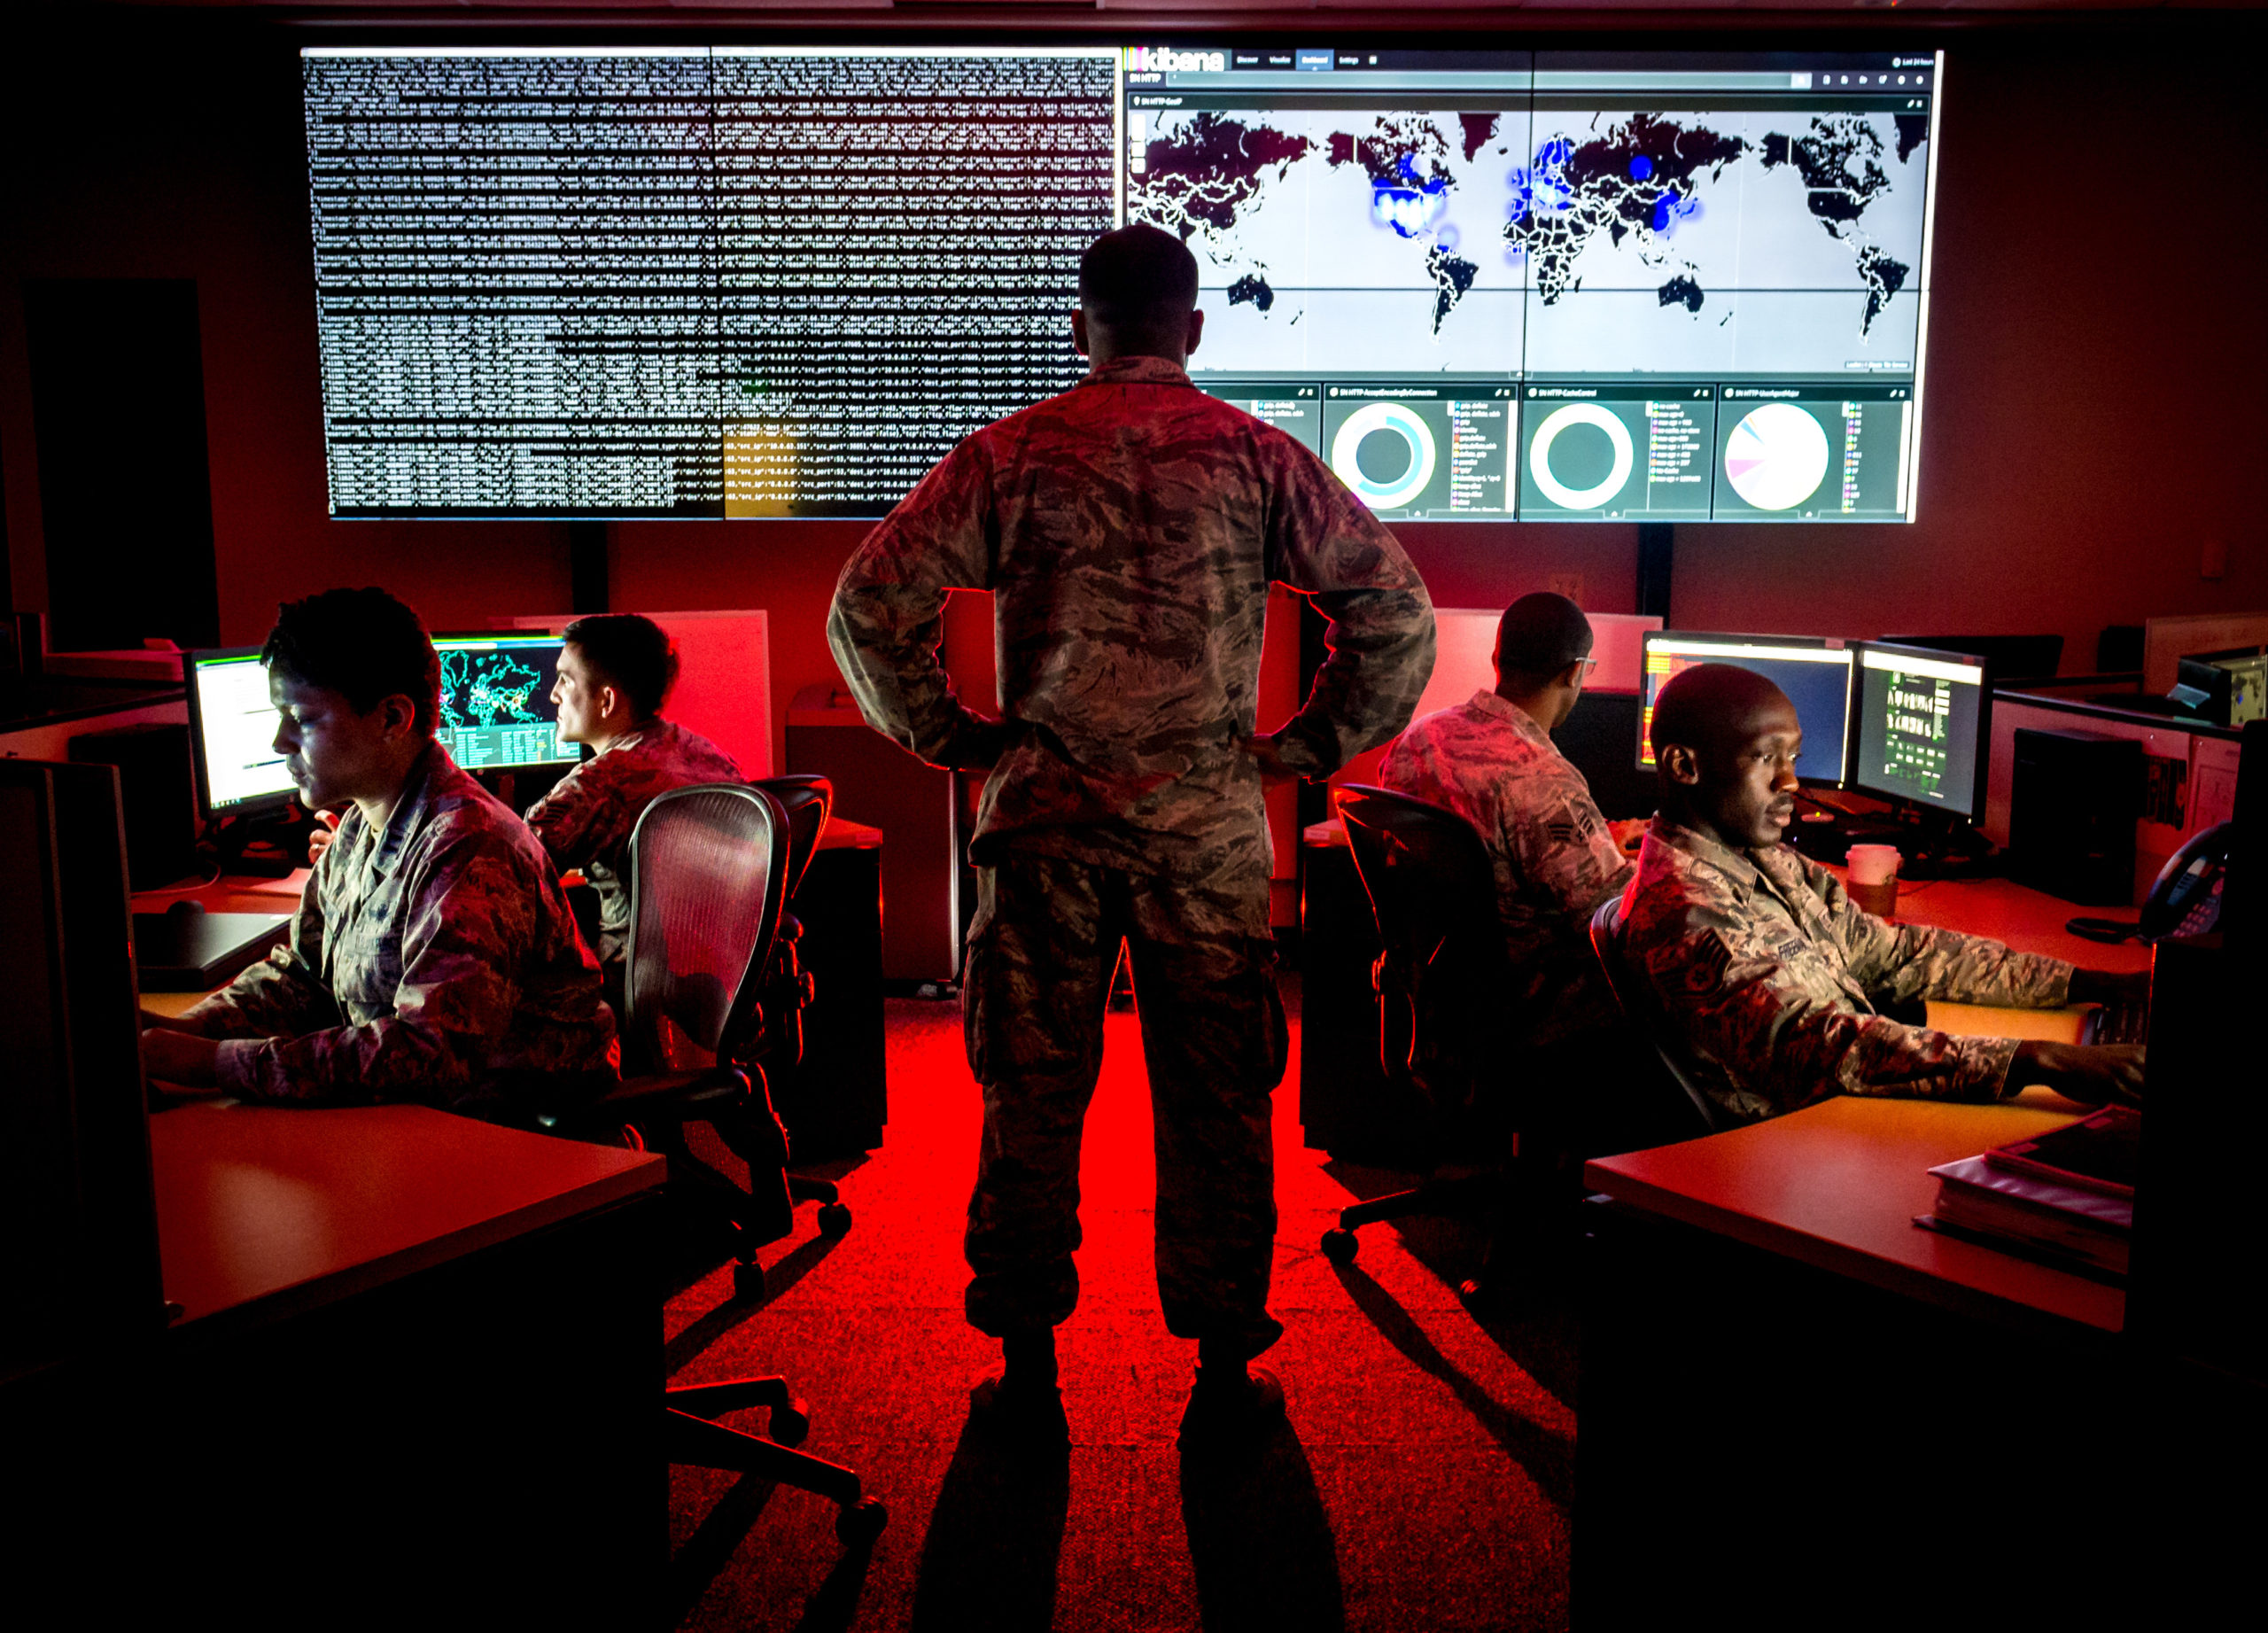 Cyber-warfare specialists serving with the 175th Cyberspace Operations Group of the Maryland Air National Guard engage in weekend training at Warfield Air National Guard Base, Middle River, Md., Jun. 3, 2017. U.S. Air Force photo by J.M. Eddins Jr.